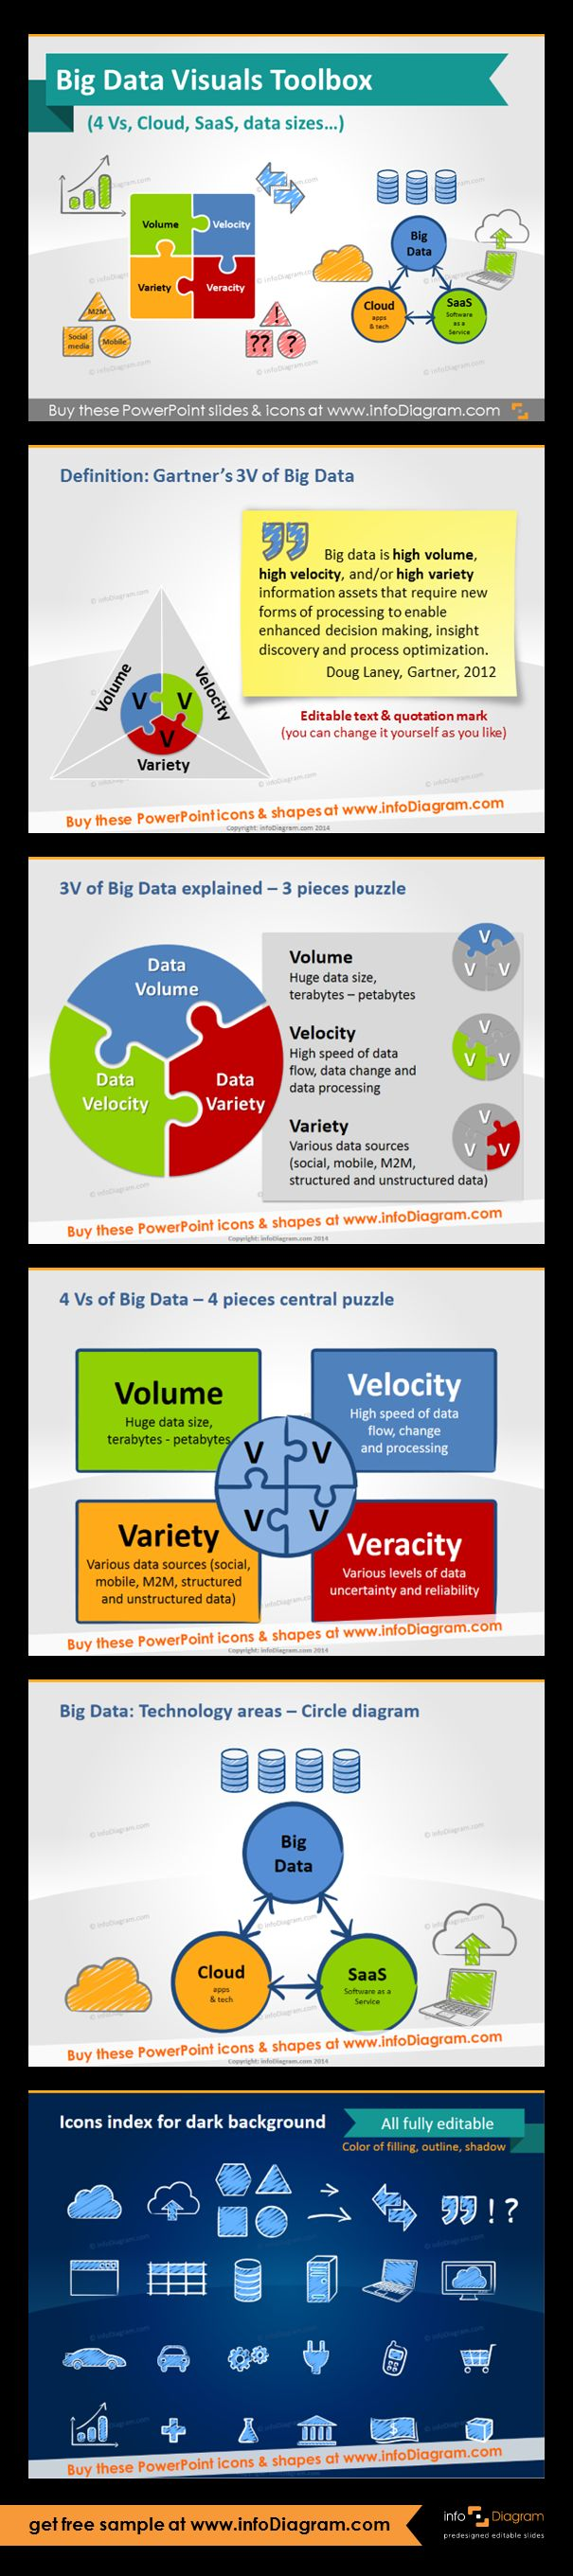 Big Data visuals toolbox for ppt - diagrams and icons. Fully editable in PowerPoint set of vector shapes fully editable by using built-in PowerPoint tools. Big Data definition: Gartner's 3V (Volume, Velocity, Variety), 3-pieces puzzle. Extended 4Vs of Big Data - 4 pieces central puzzle diagram. Technology areas of Big Data in circle diagram. Icons for dark background.